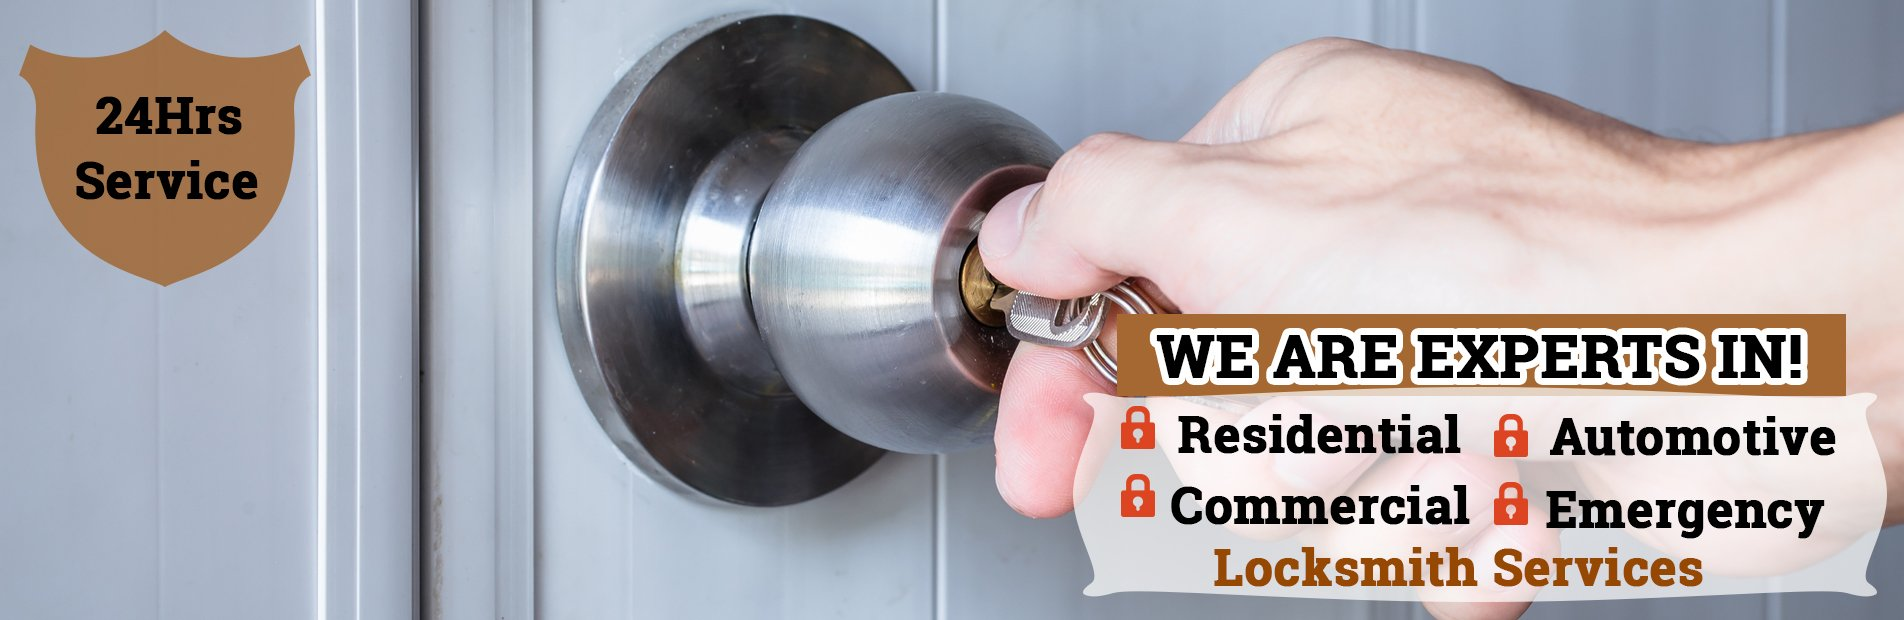 Phoenix Lock And Locksmith Phoenix, AZ 602-687-1794